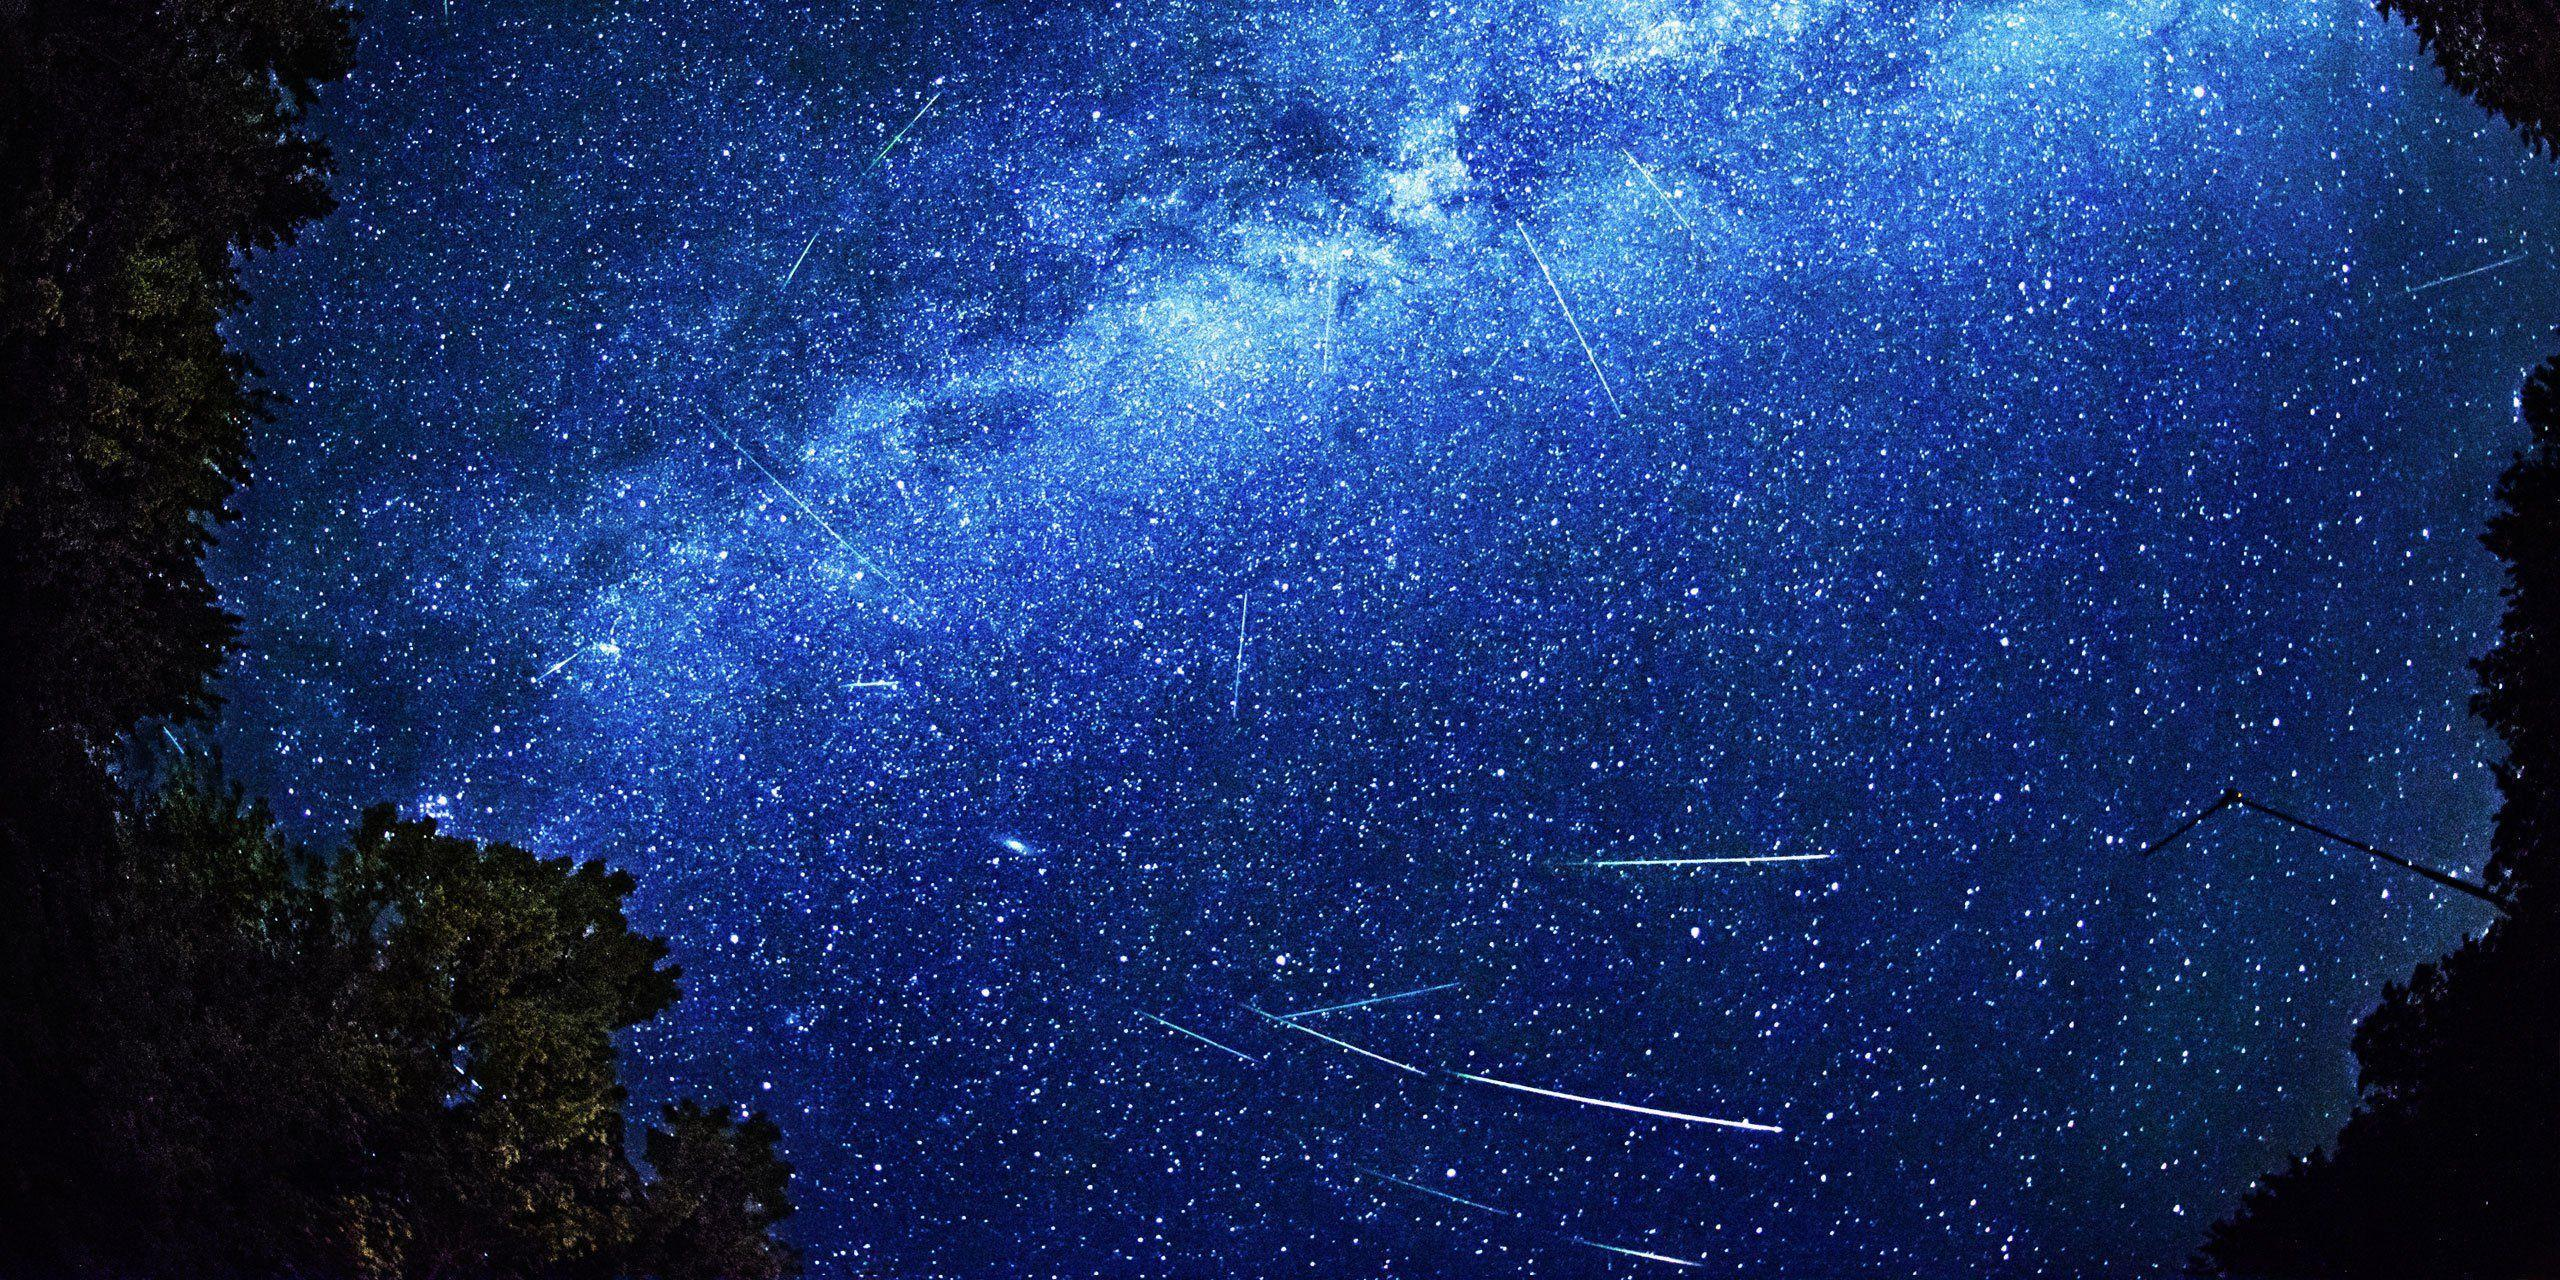 Perseid Meteor Shower Hd - wallpaper.